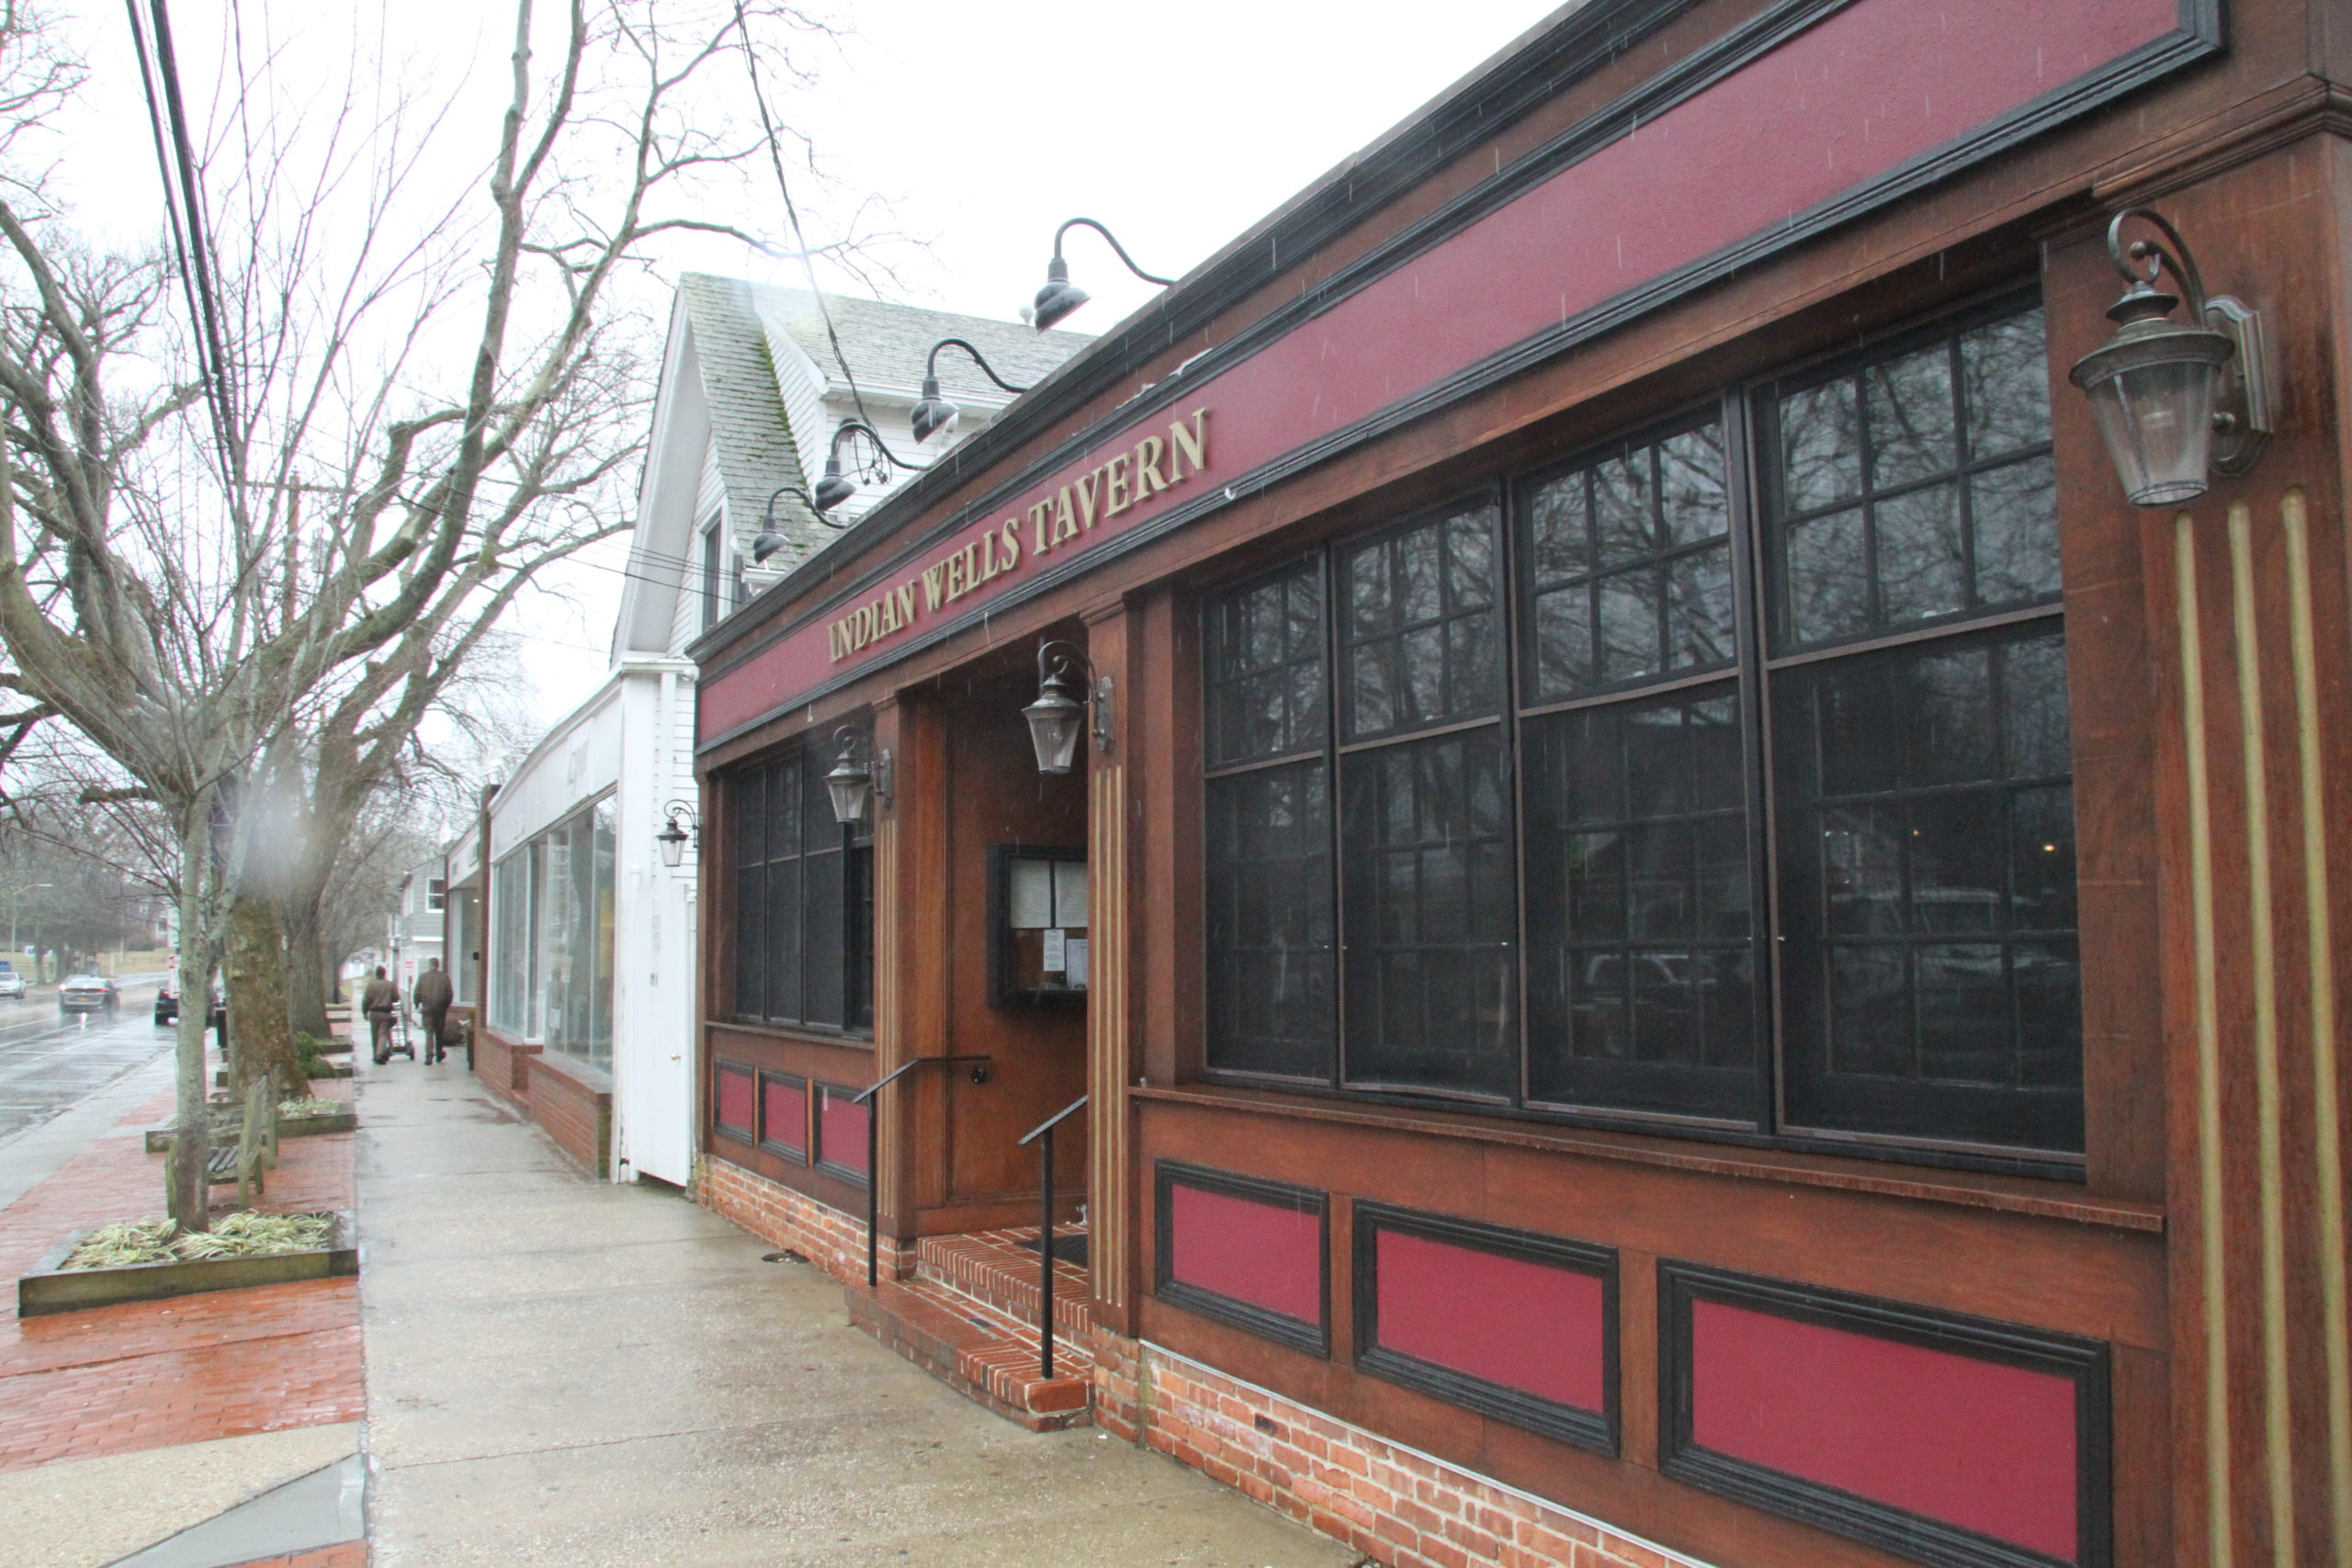 Indian Wells Tavern in Amagansett has been purchased by the restaurant company that also owns Highway Restaurant & Bar in Wainscott.